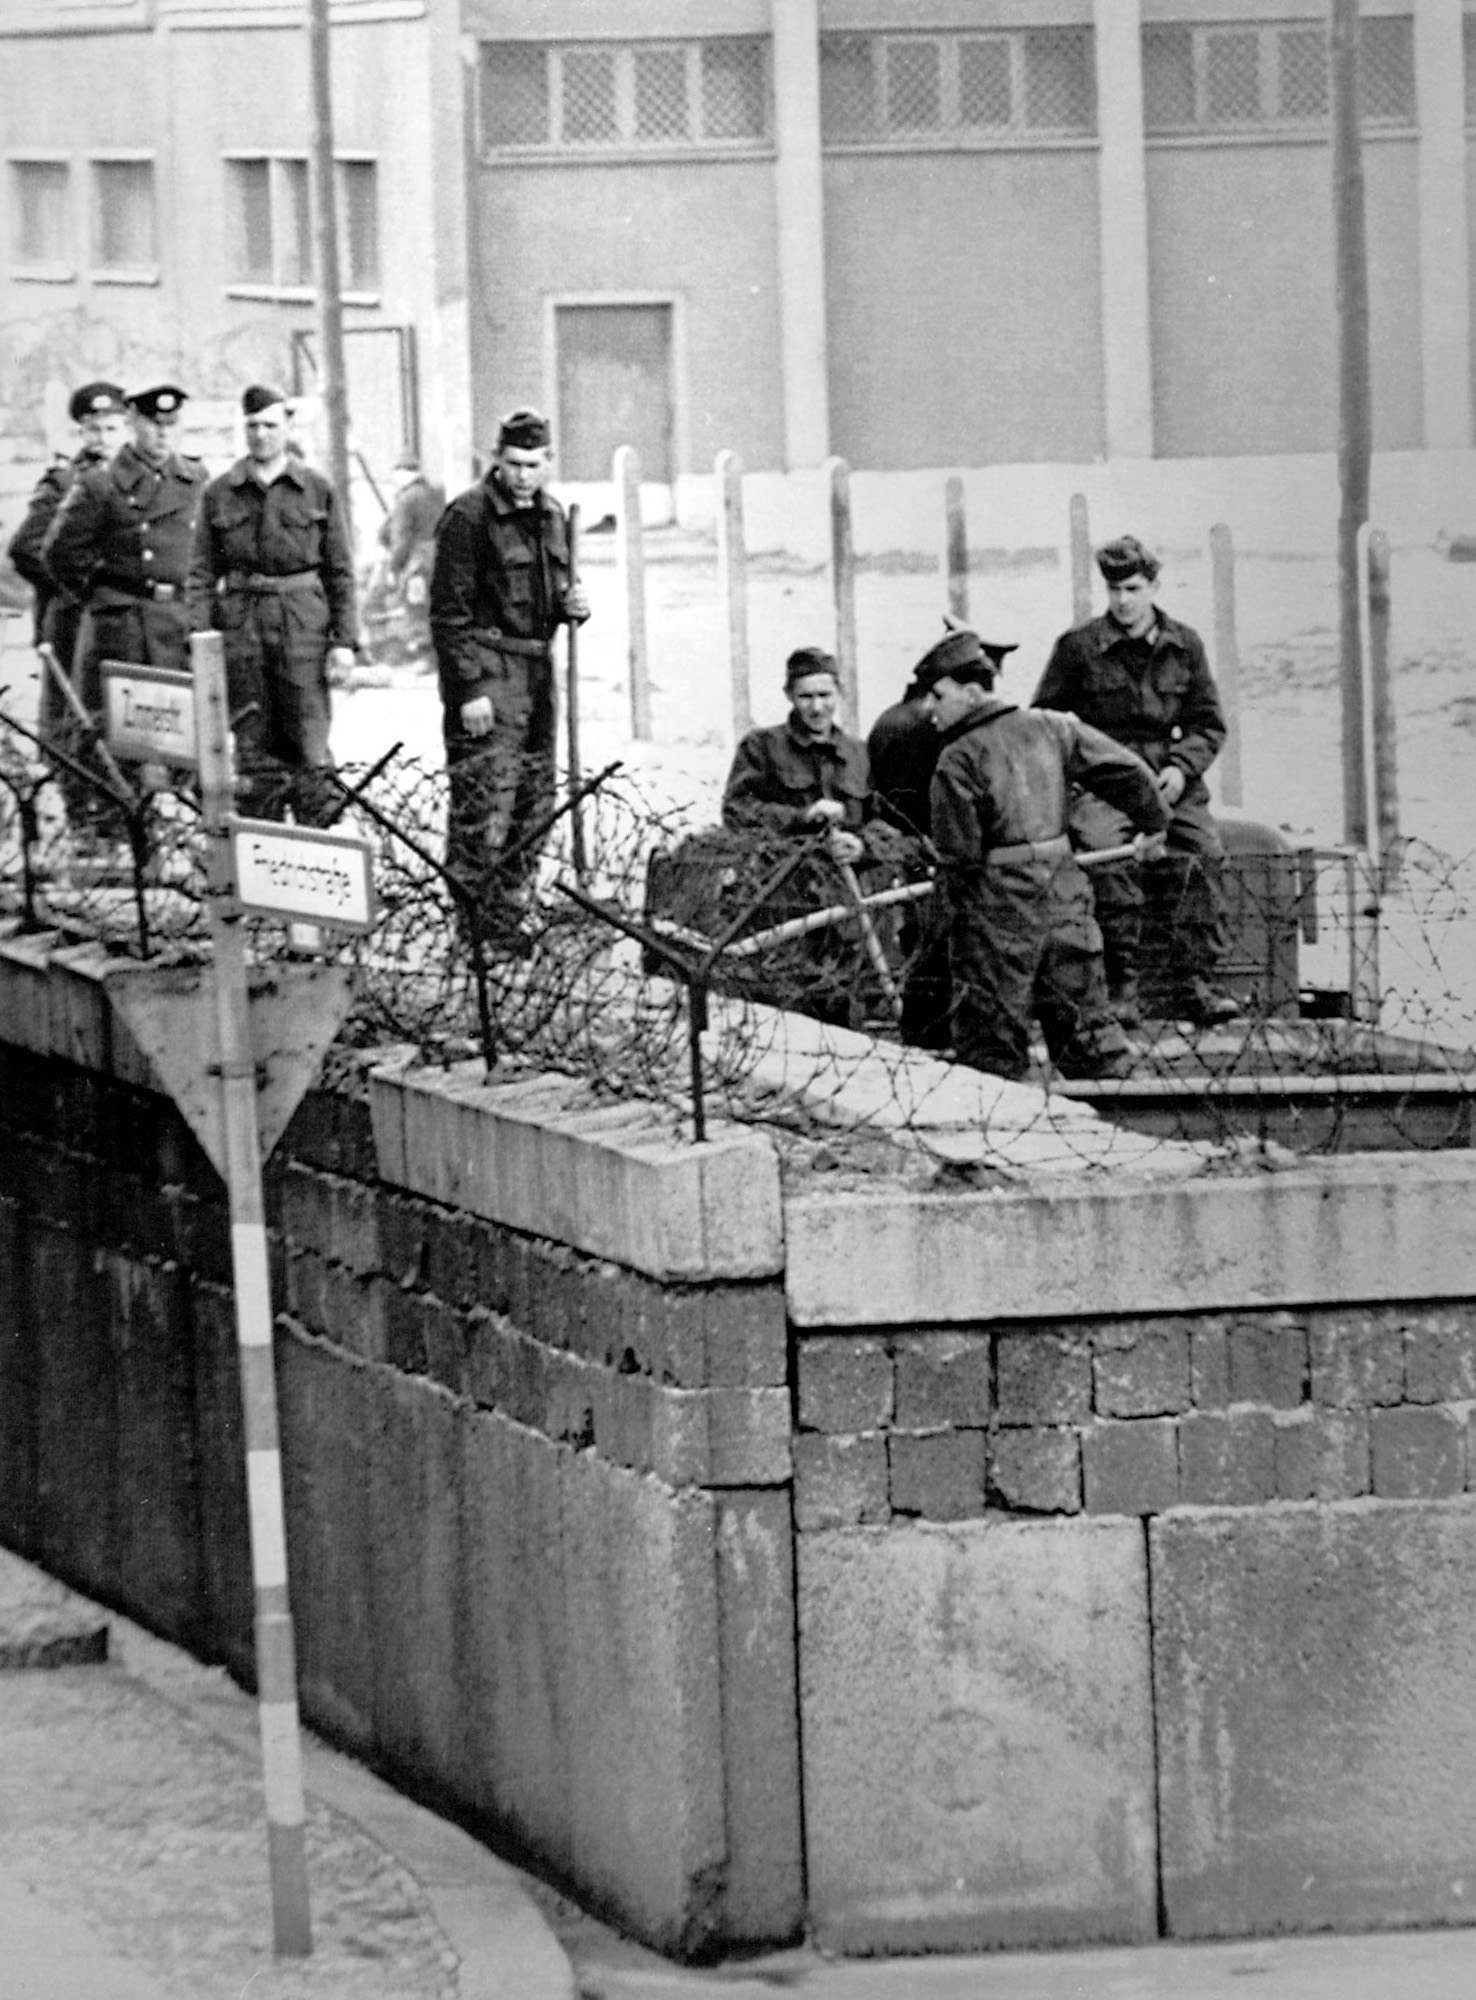 East Germany begins construction of the Berlin Wall